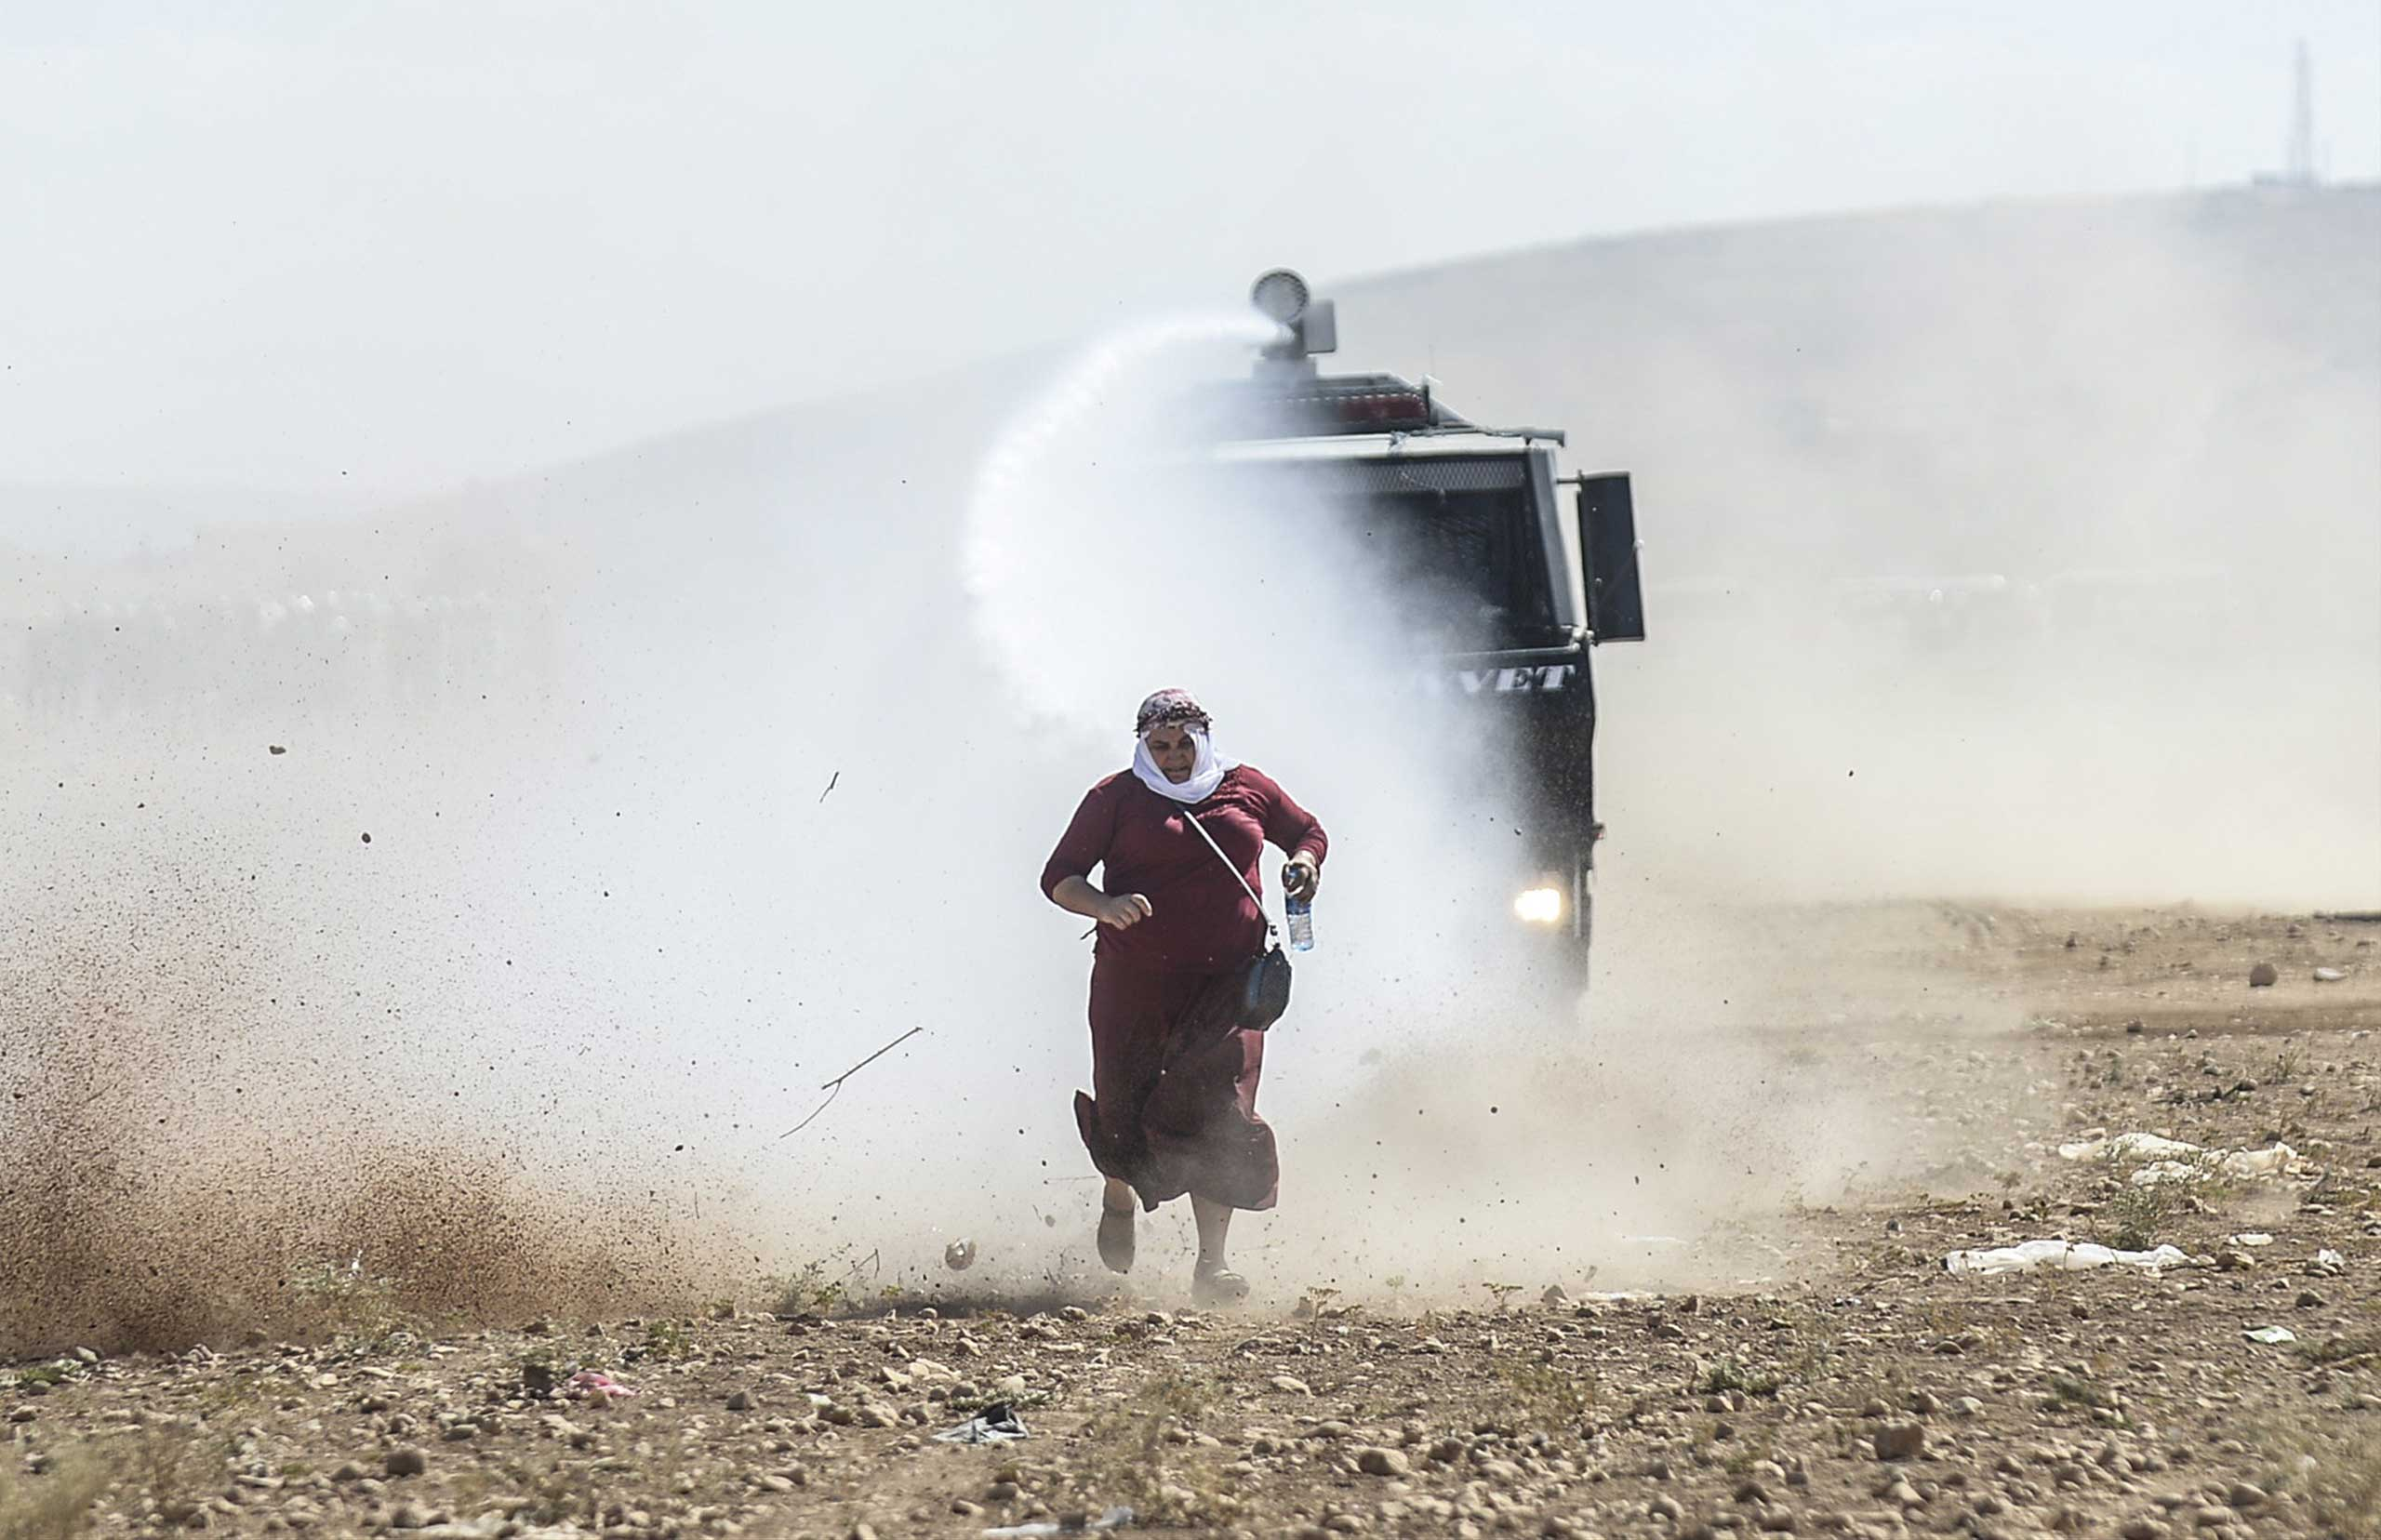 A Kurdish woman runs away from a water cannon near the Syrian border after Turkish authorities temporarily closed the border in the southeastern town of Suruc in Sanliurfa province, on Sept. 22, 2014.